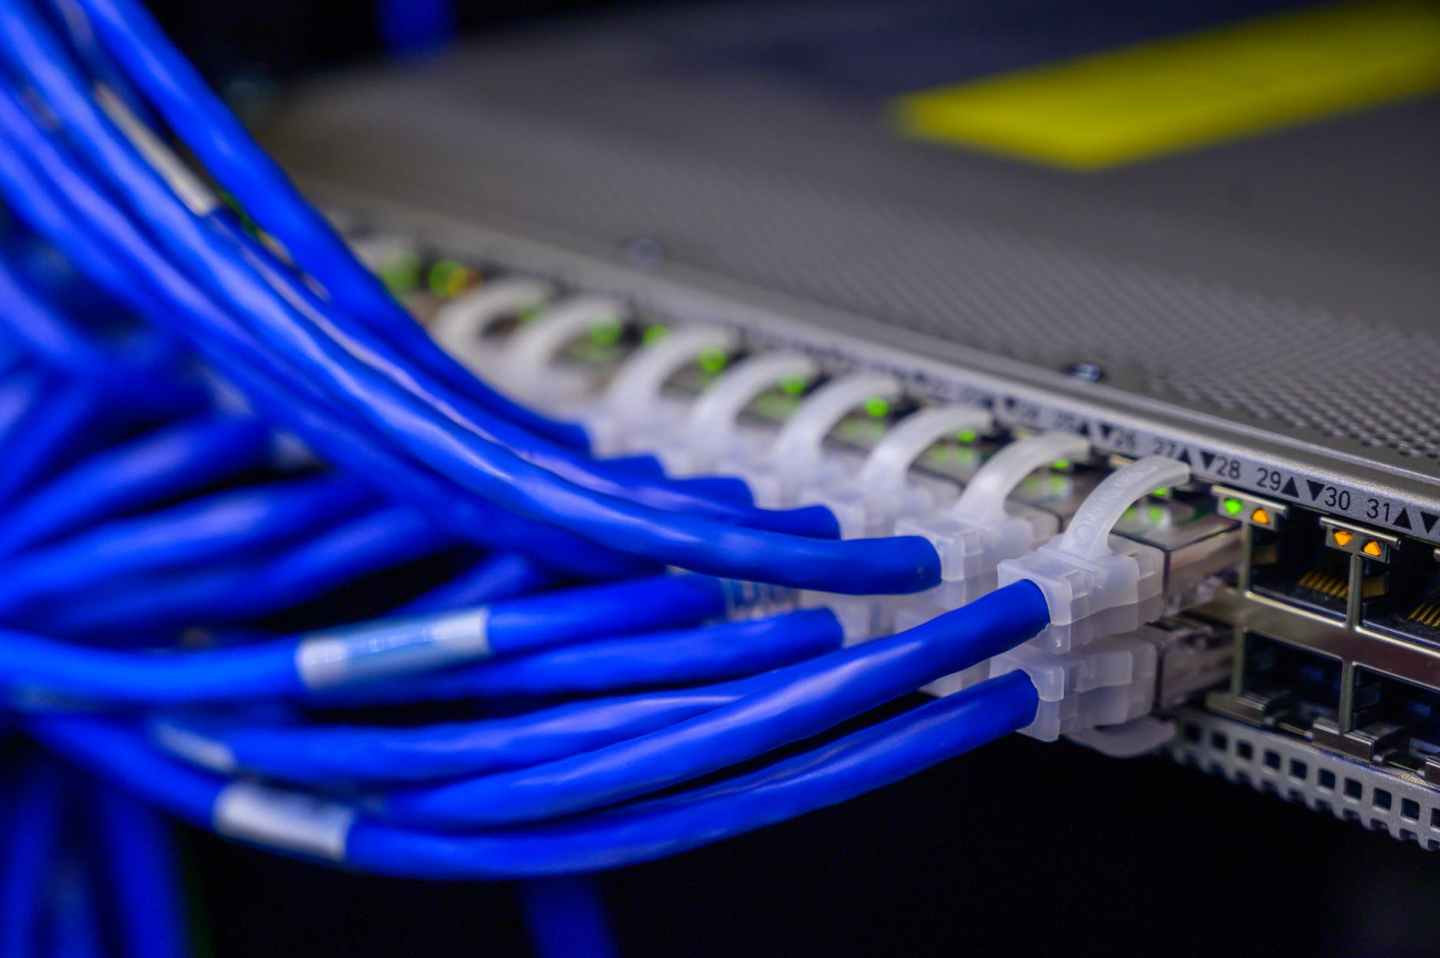 ethernet cable connected to a compartment port